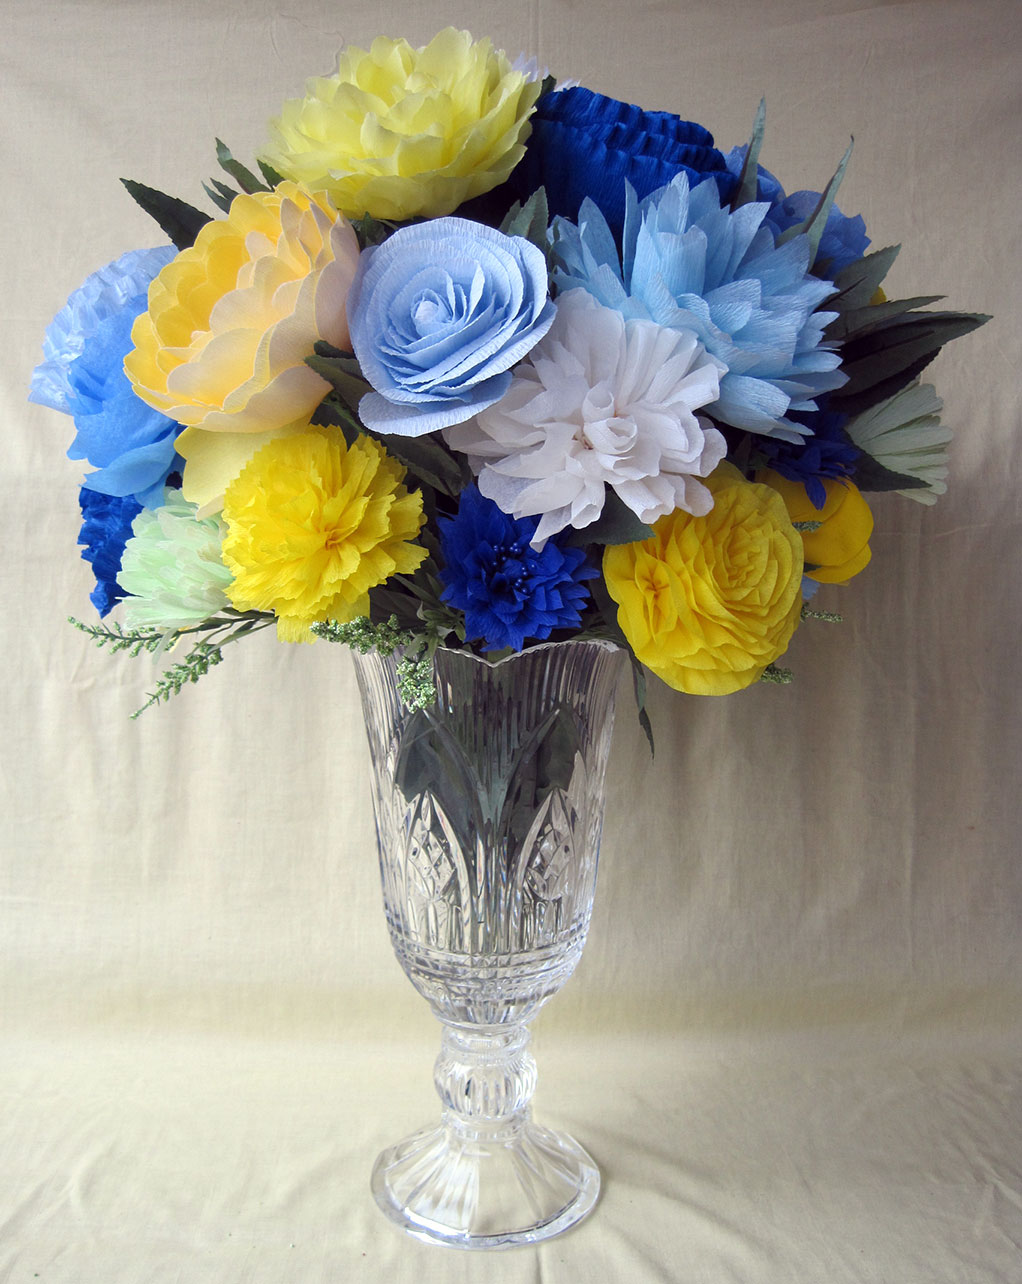 Crepe paper flowers a blue and yellow wedding q is for quilter crepe paper wedding arrangement mightylinksfo